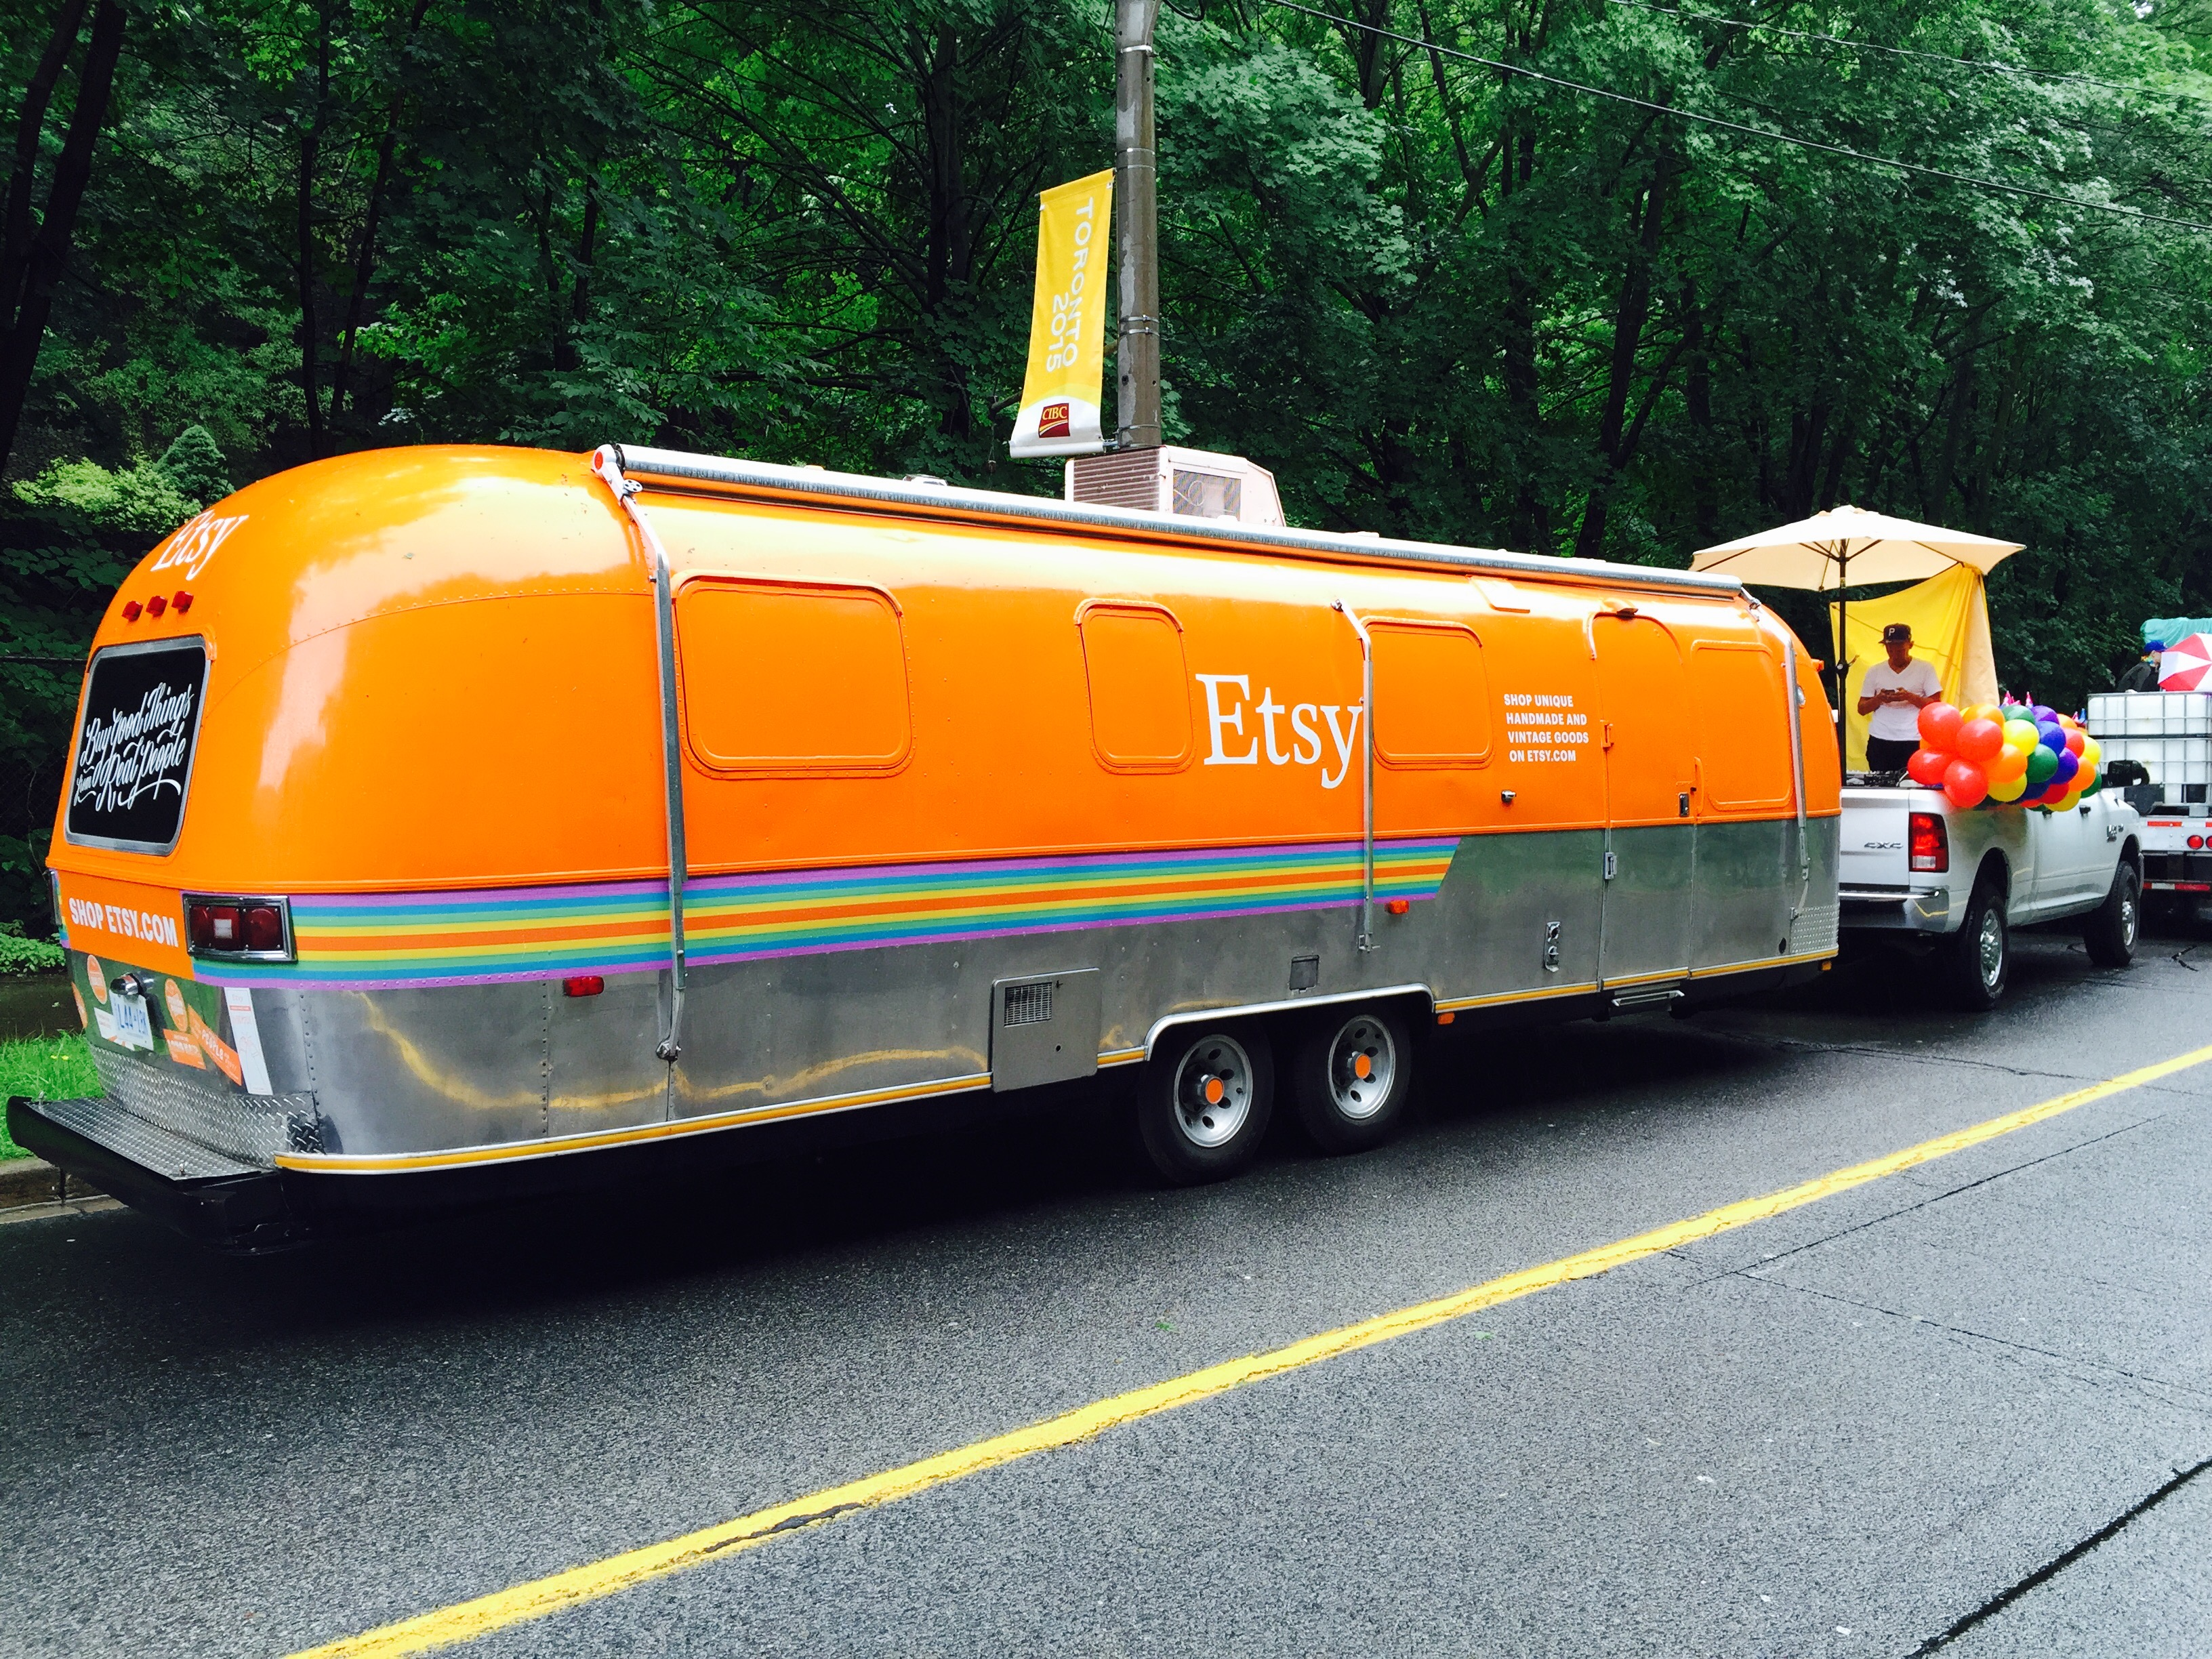 The Etsy Airstream